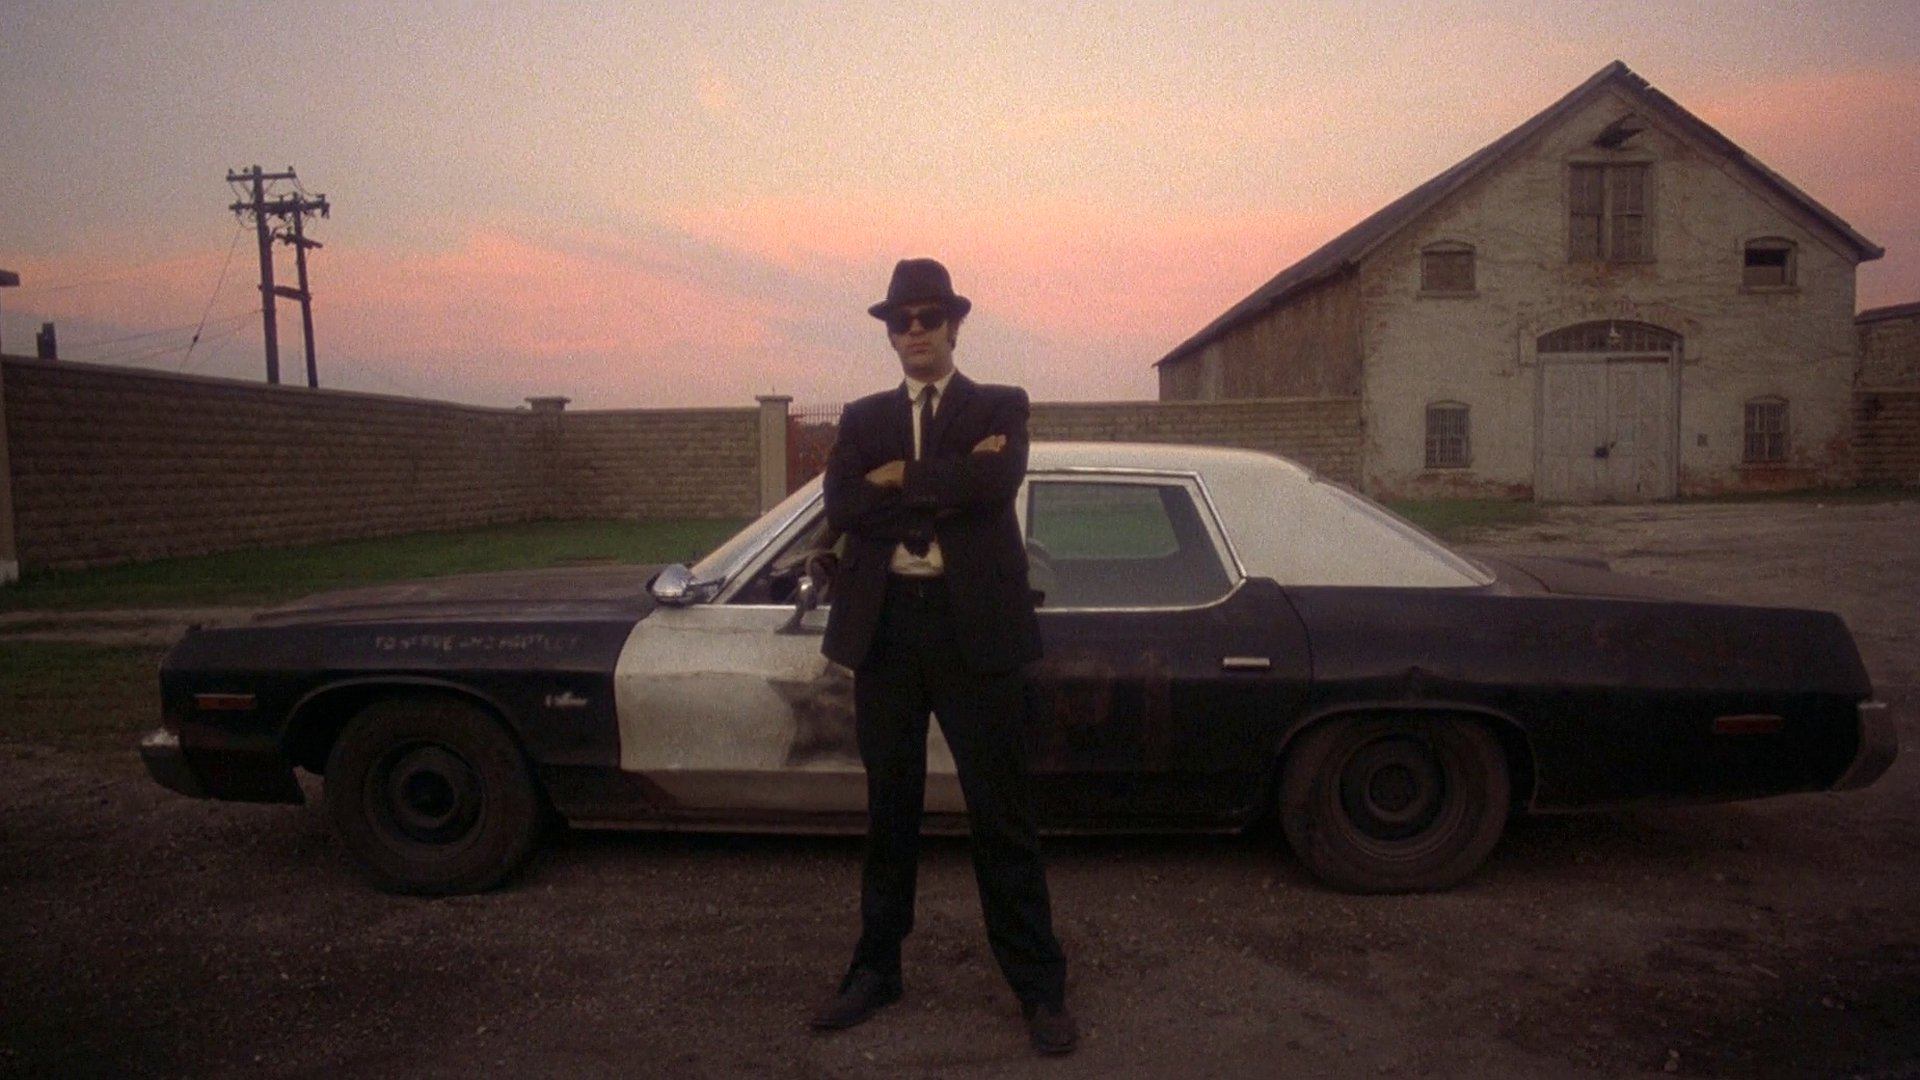 https://i.ibb.co/1bVQPB4/bluesmobile02.jpg